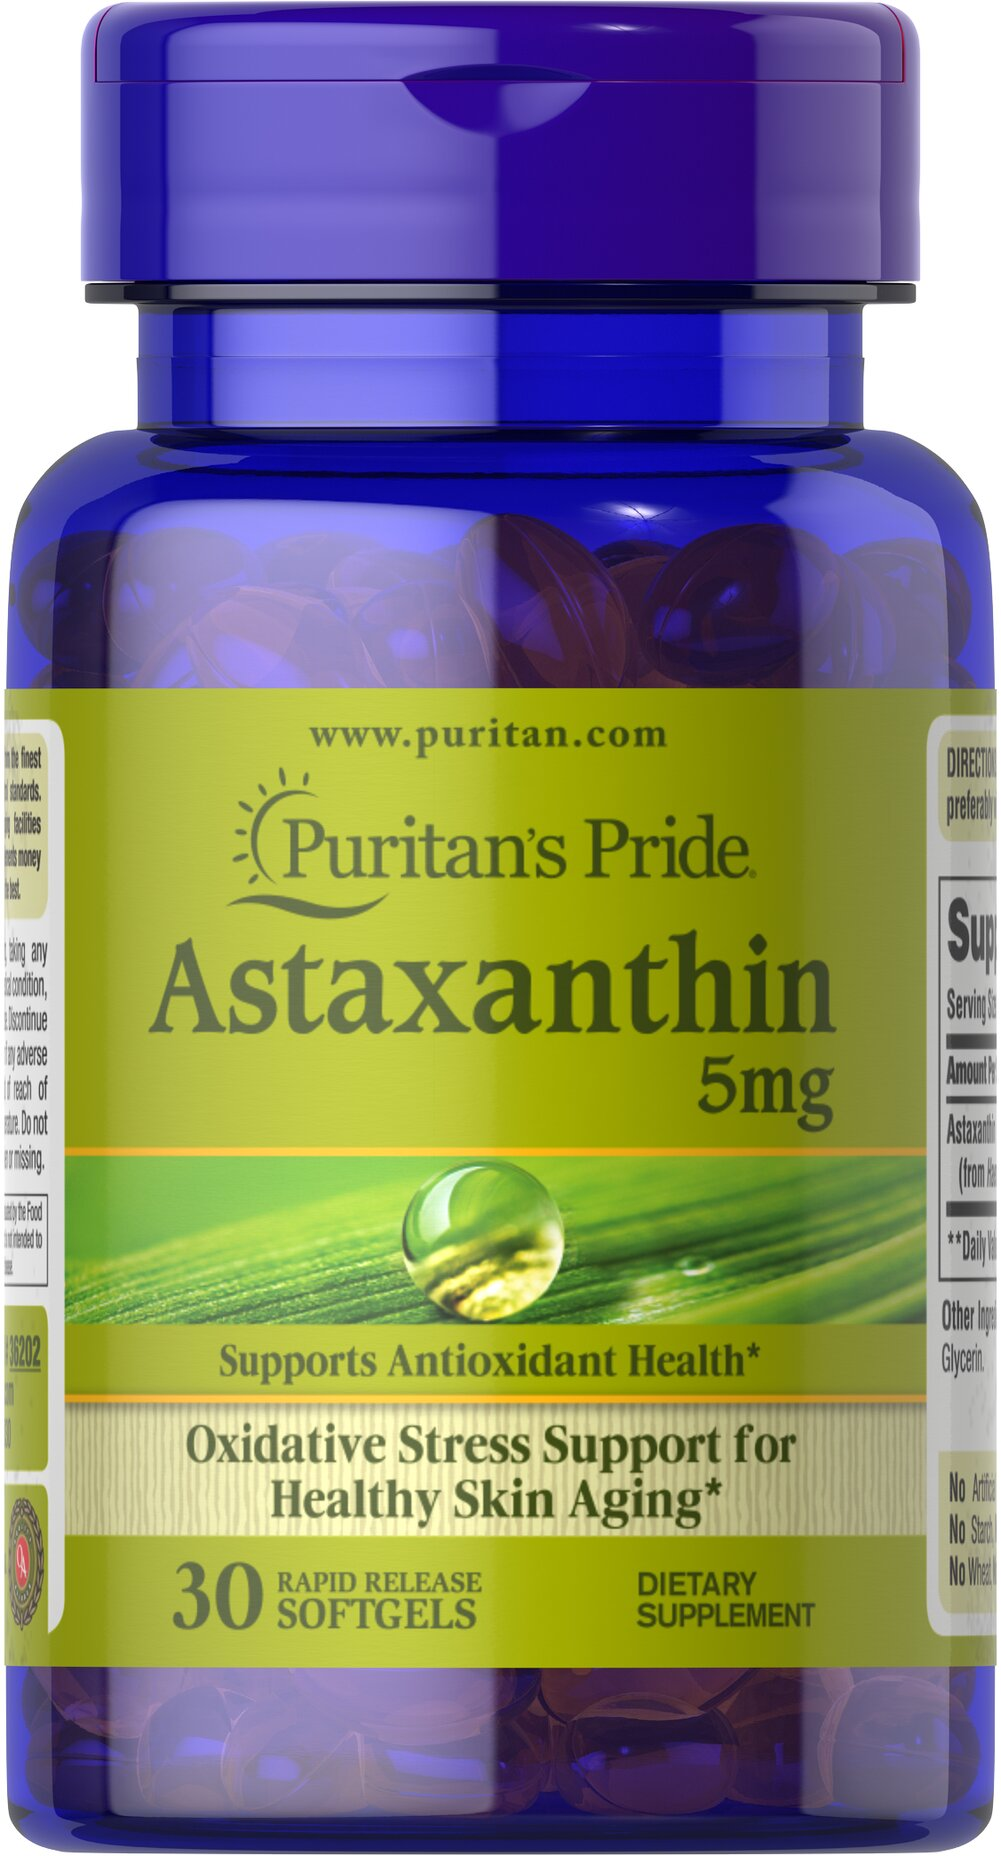 Natural Astaxanthin 5 mg <p>Astaxanthin promotes antioxidant health, which helps fight the cell damaging free radicals that can lead to oxidative stress which may contribute to the premature aging of cells.**</p><p></p><p></p> 30 Softgels 5 mg $21.99